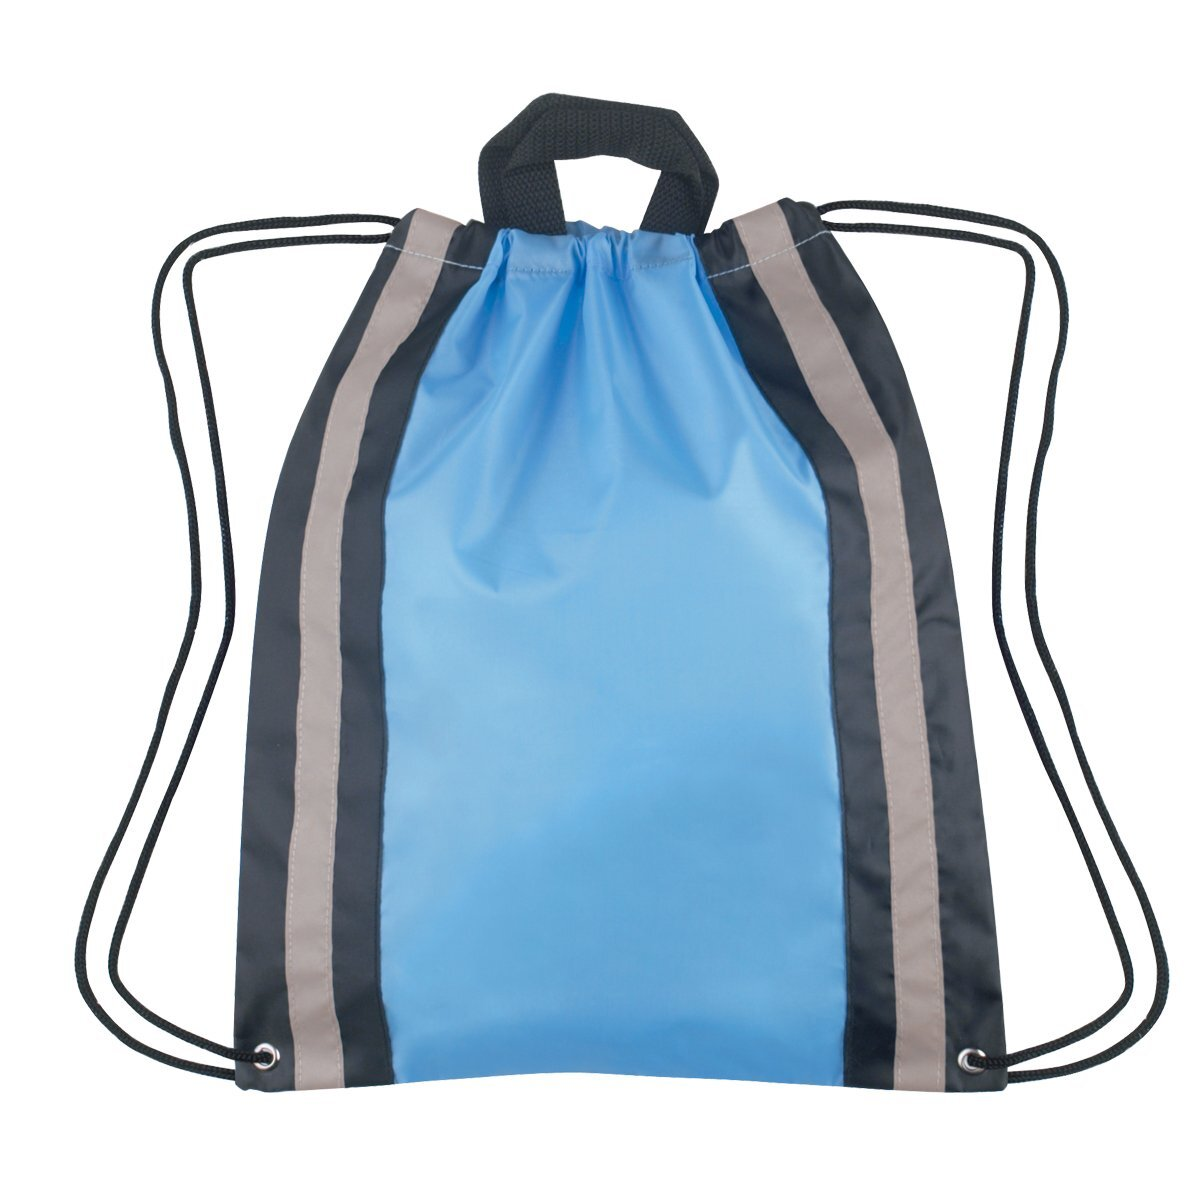 Reflective Nylon Sports Pack, Small